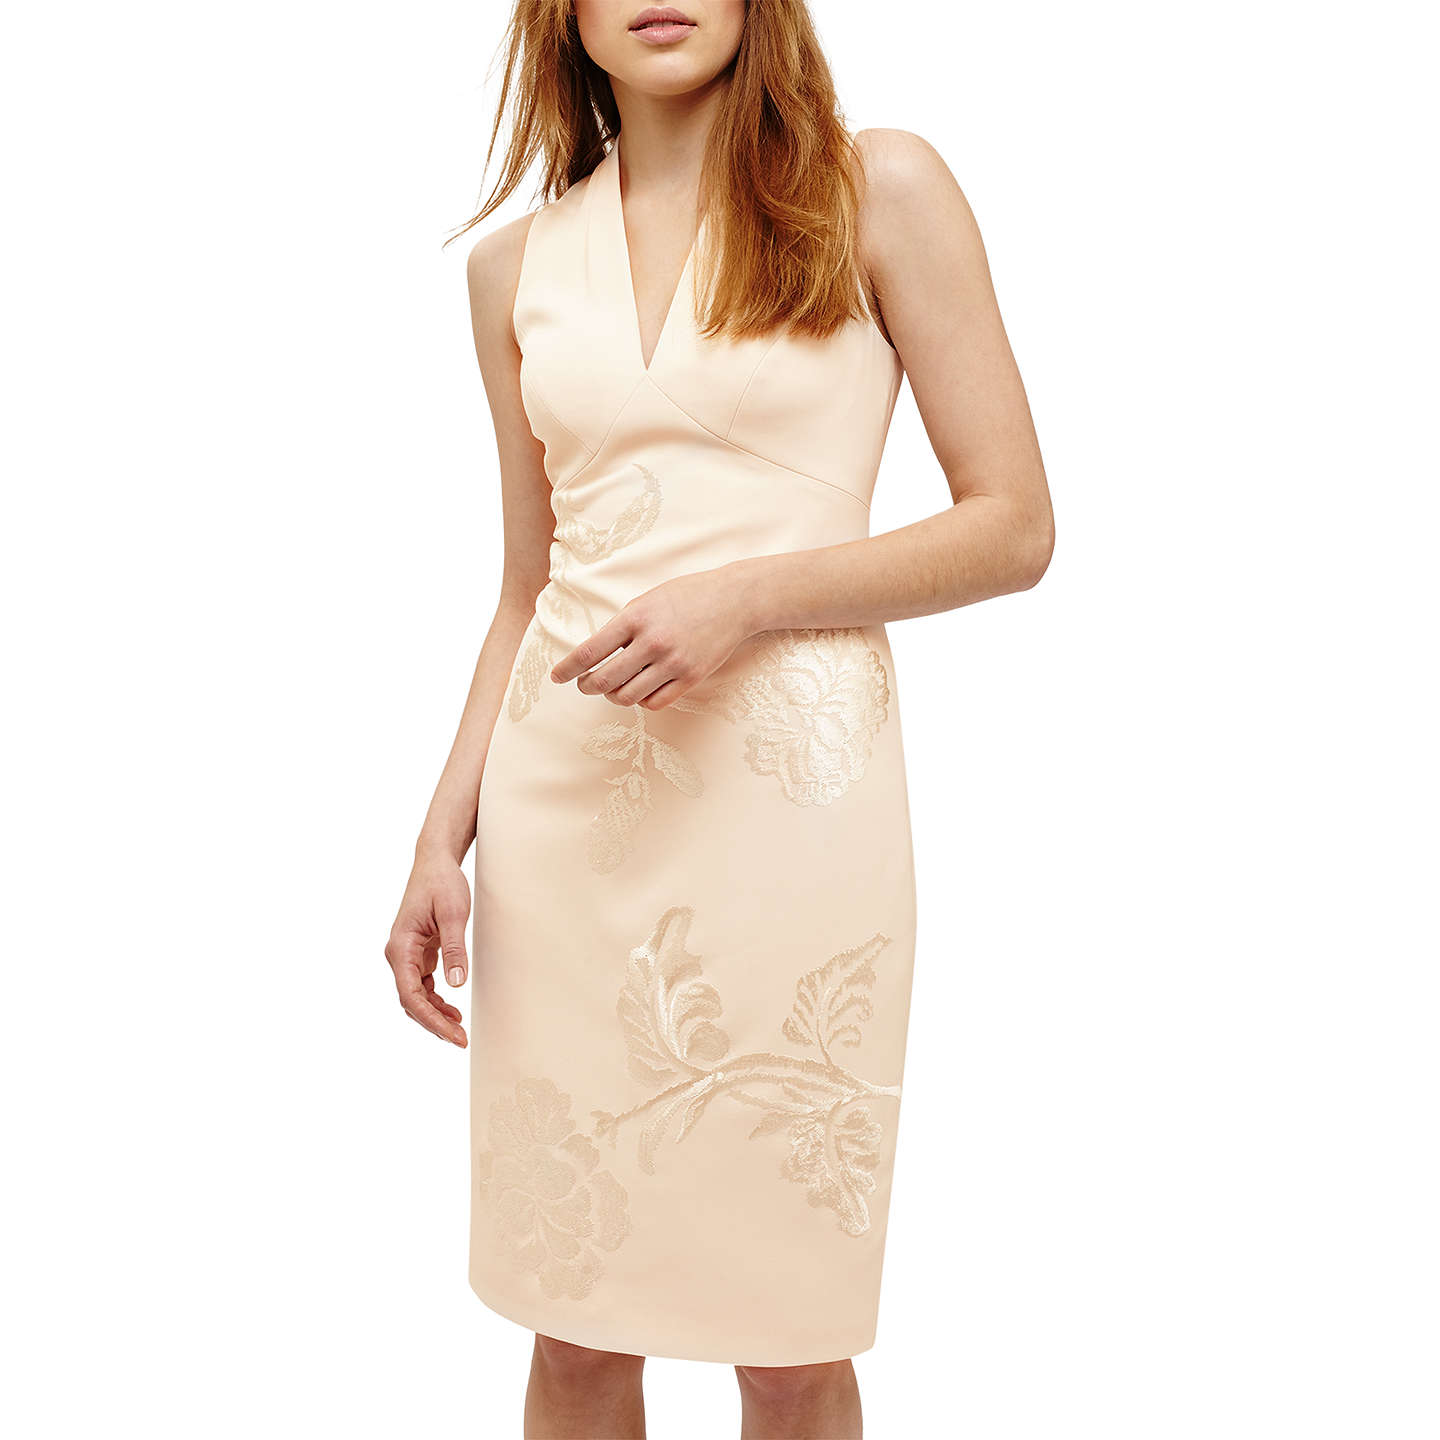 BuyPhase Eight Ruby Embroidered Dress, Cream, 8 Online at johnlewis.com